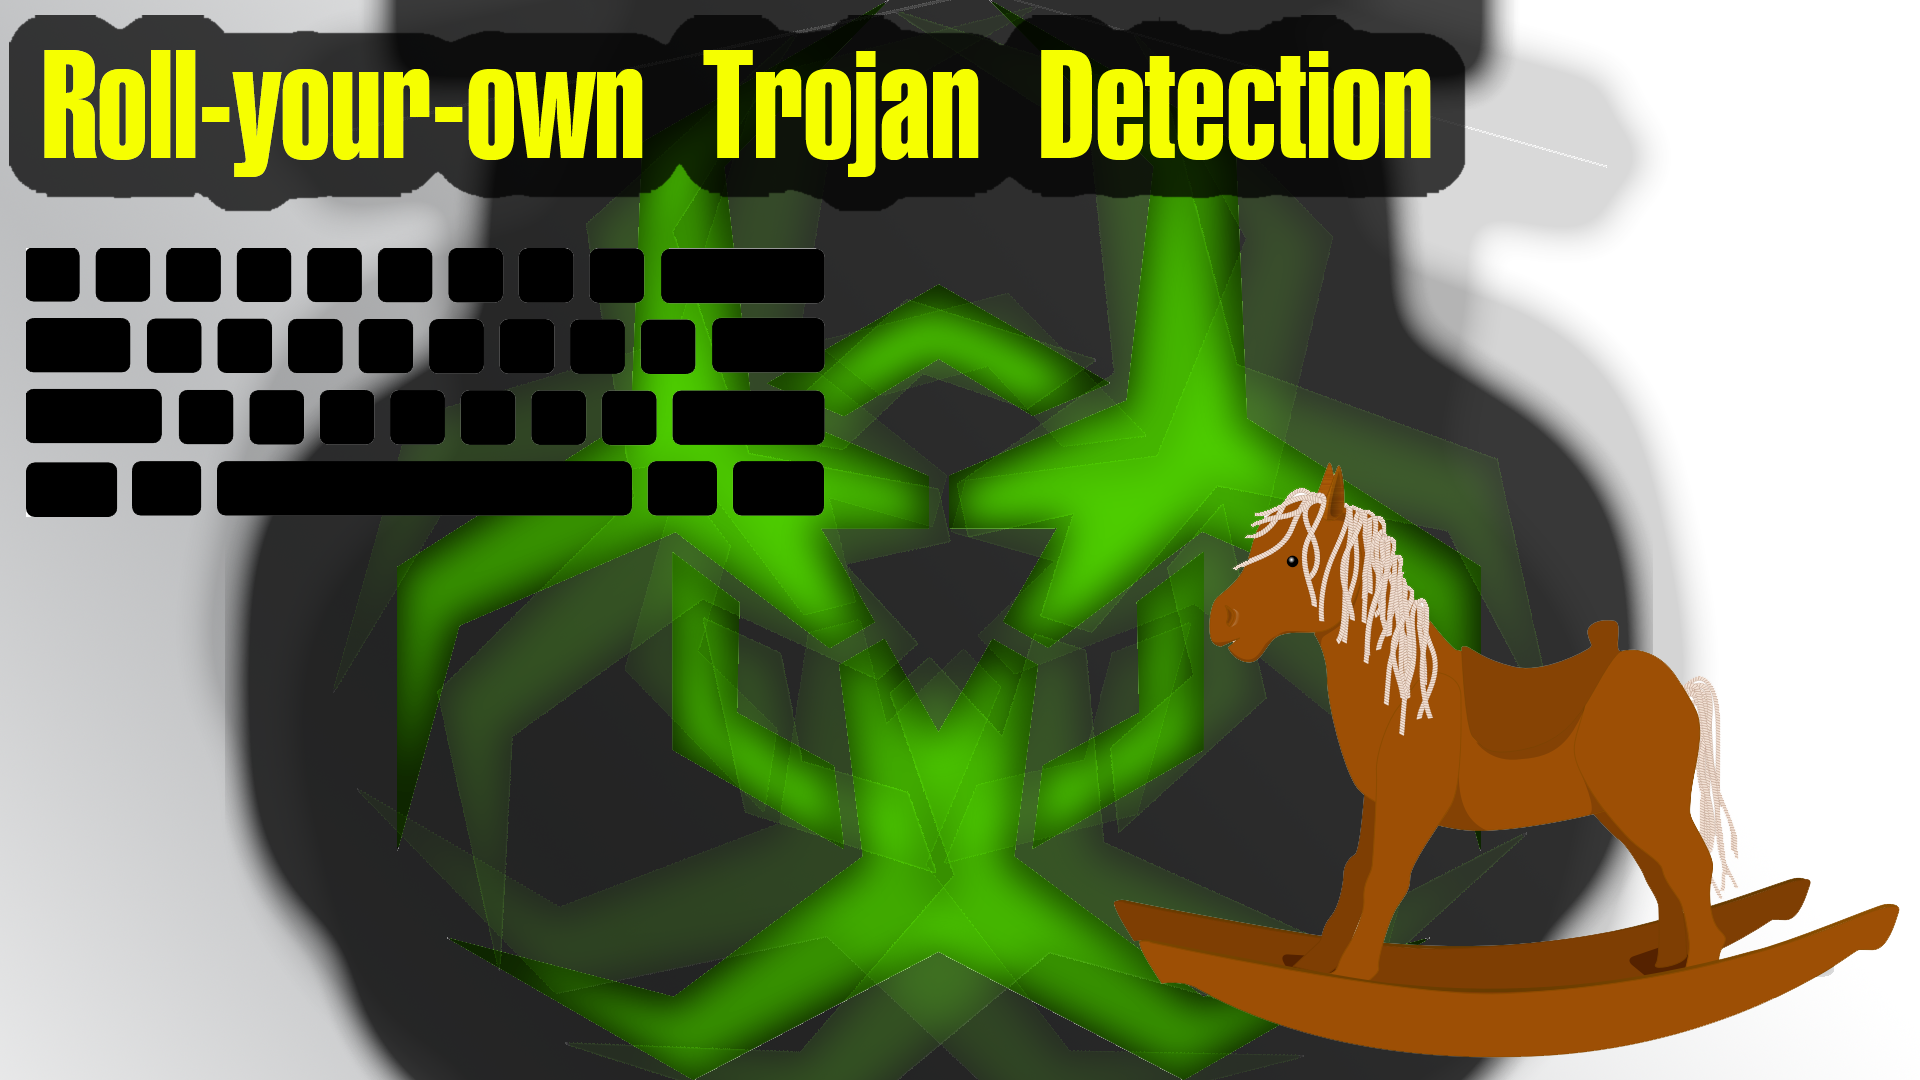 Roll-you-own Ventir Trojan Detector for OS X